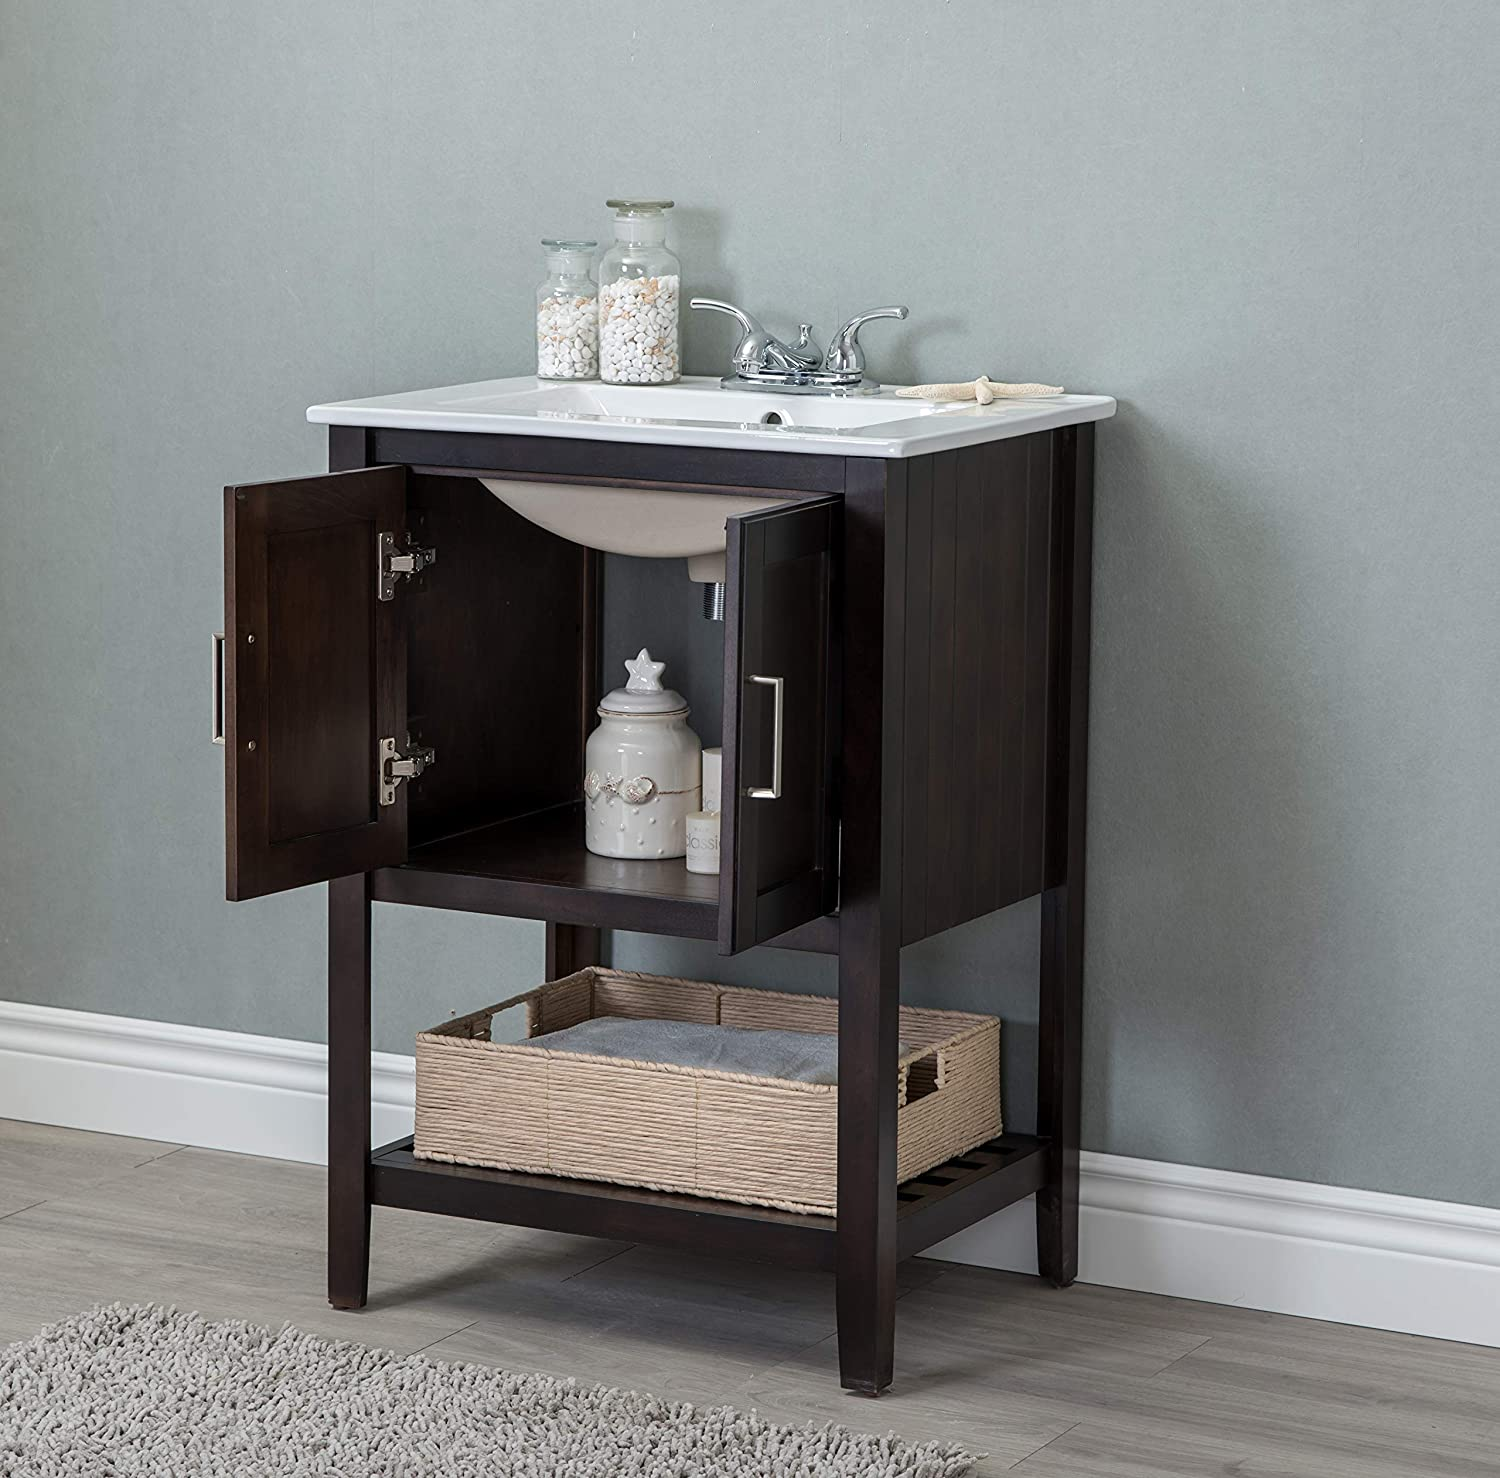 Legion furniture WLF6020-C-BS Bathroom vanity Coffee 24